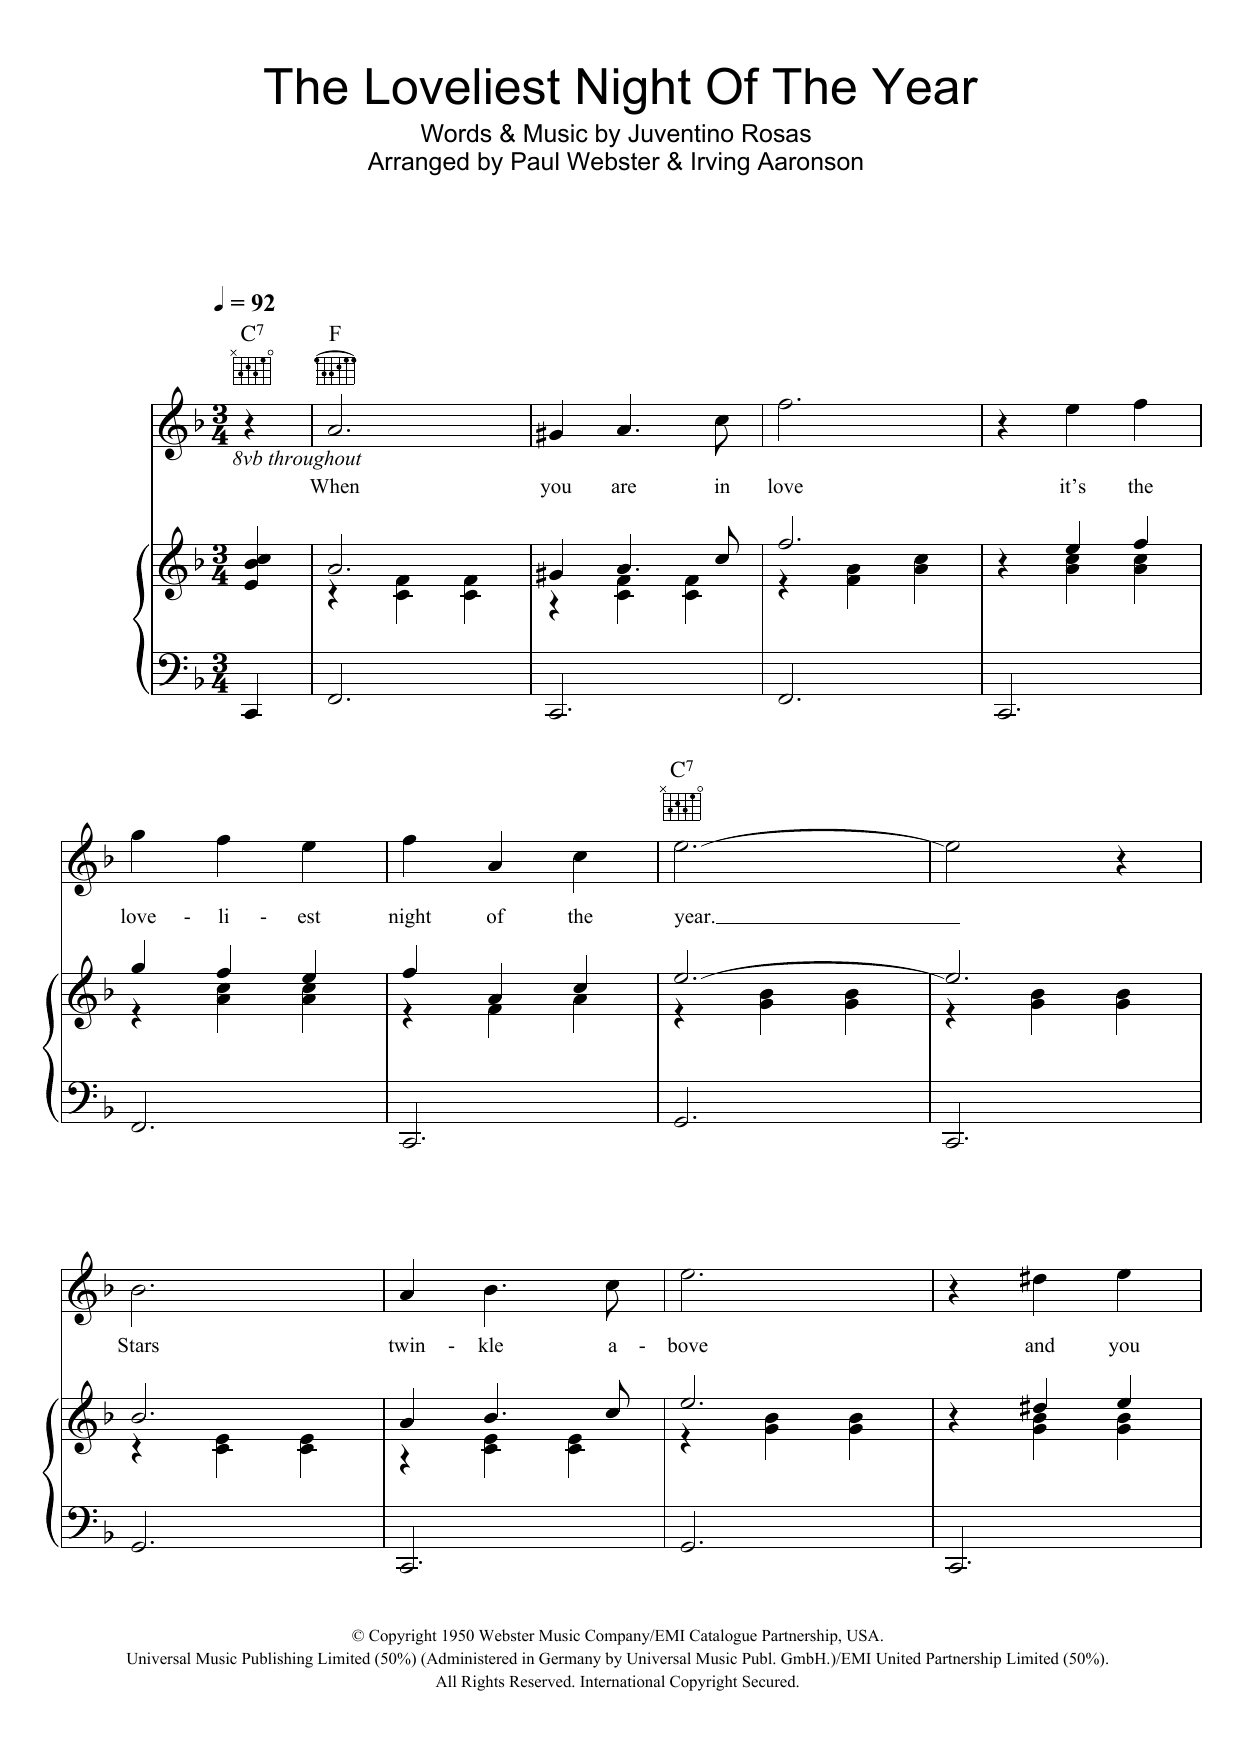 The Loveliest Night Of The Year sheet music